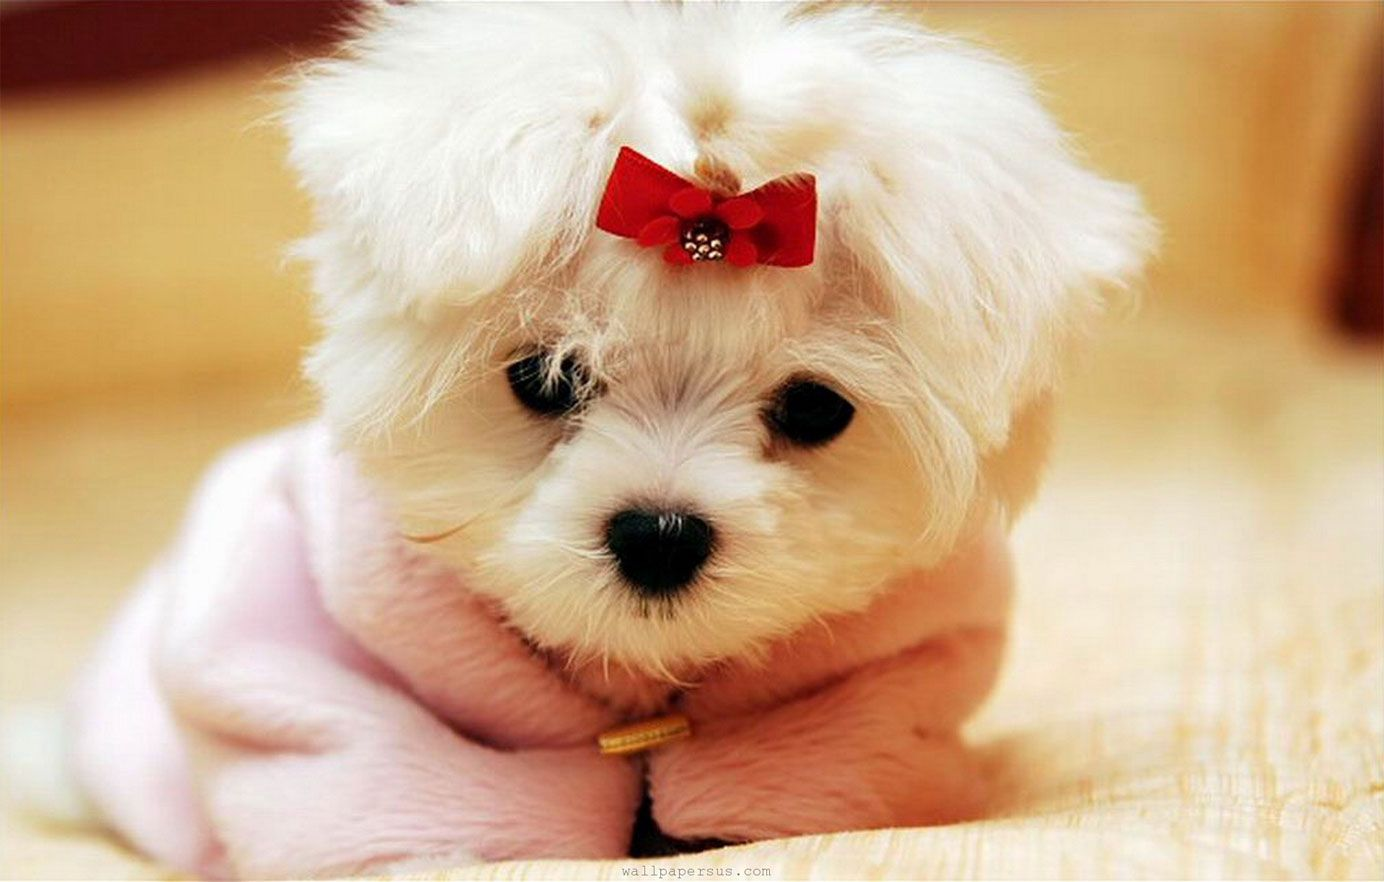 Love her tfcrueltyfree adorable images pinterest maltese maltese puppies searching for images about maltese puppies below is some images that we got from arround the web using this related keywo geenschuldenfo Image collections